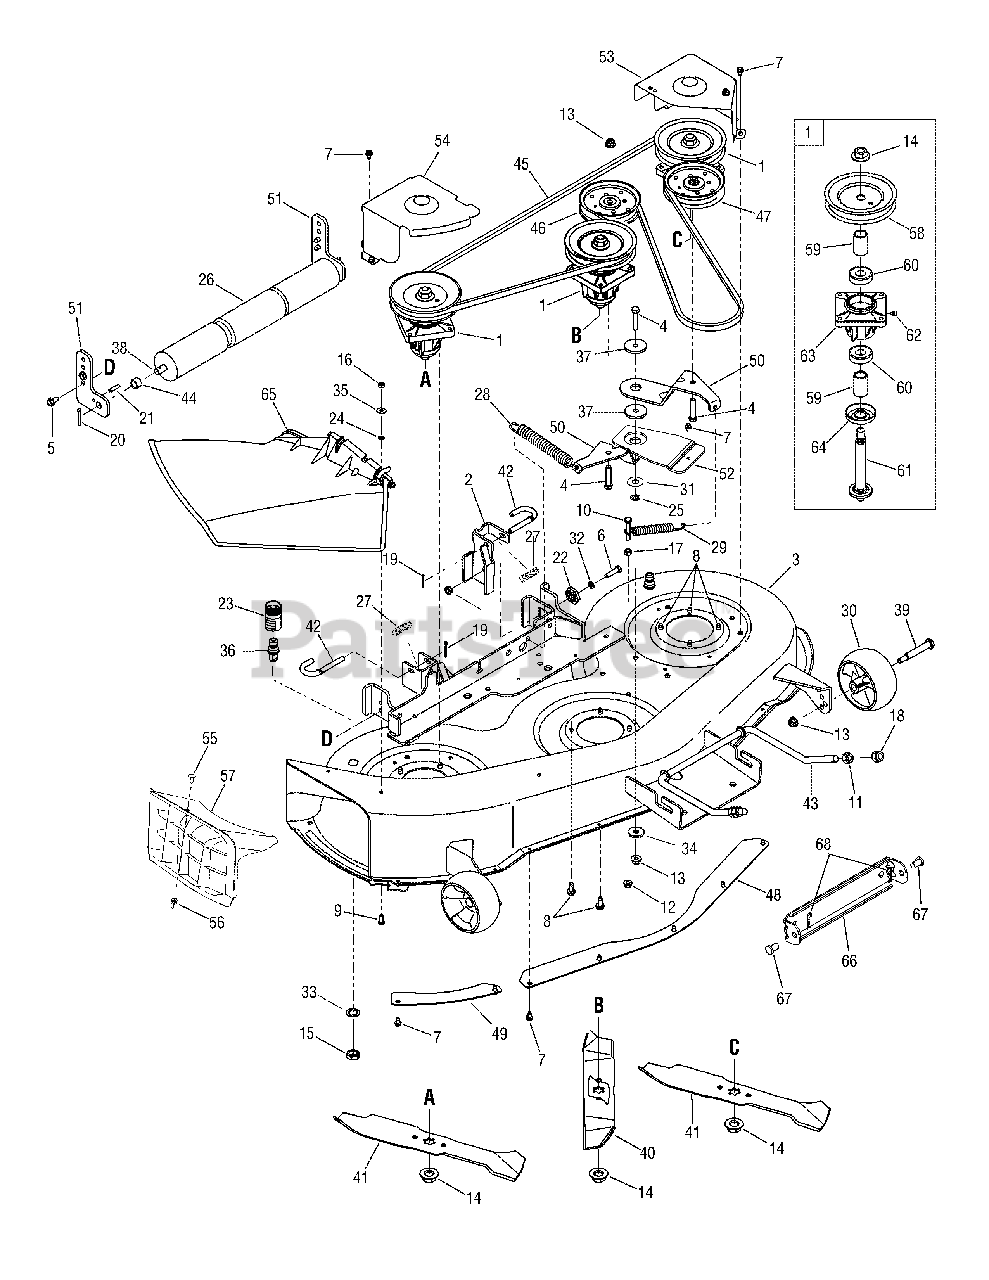 Cub Cadet Parts on the Mowing Deck i1046 Diagram for i1046